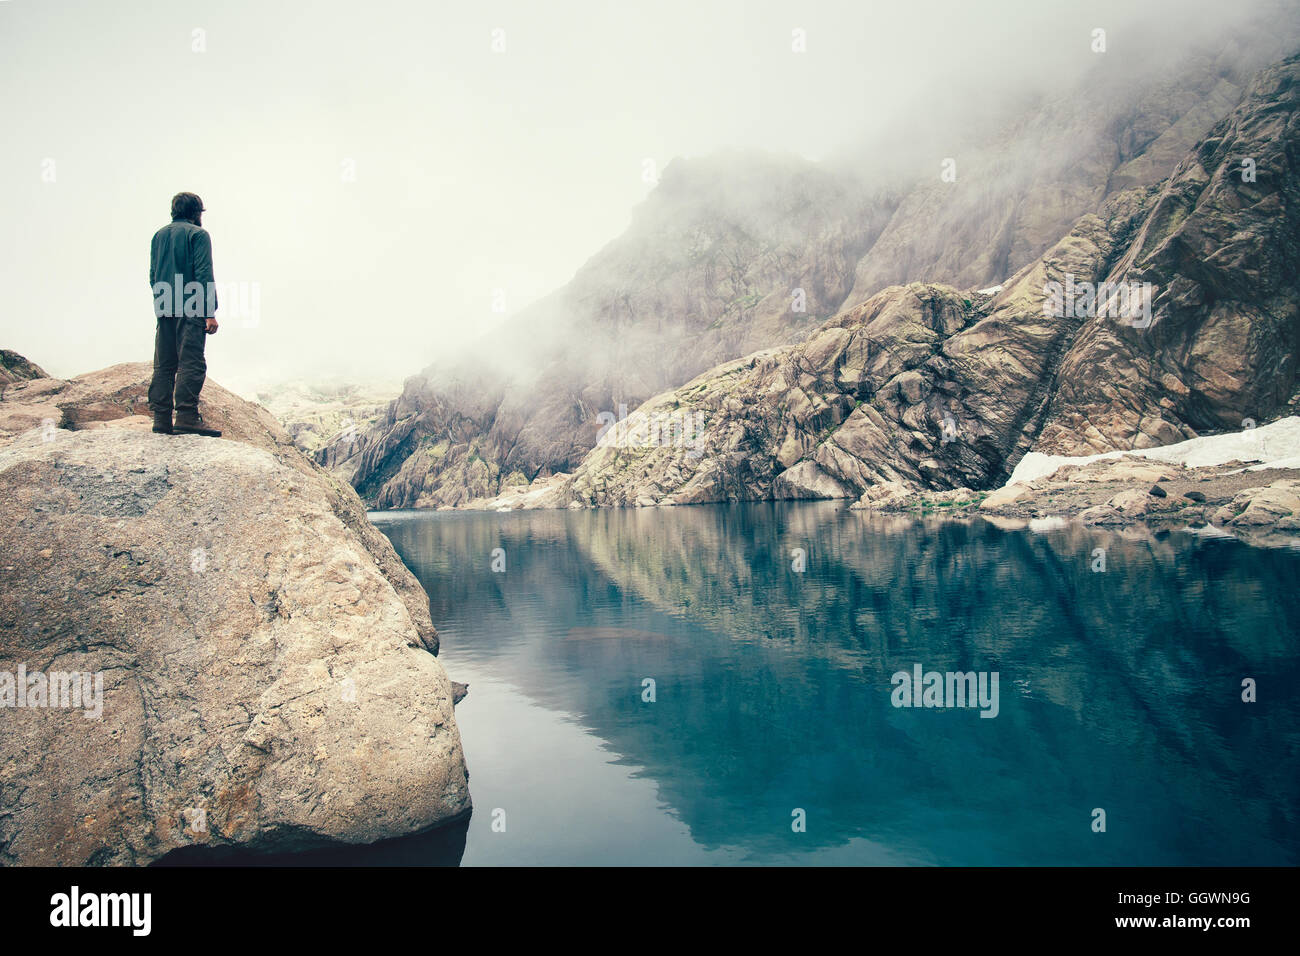 Man Traveler standing alone on stone cliff lake and misty mountains on background Travel Lifestyle concept outdoor Stock Photo